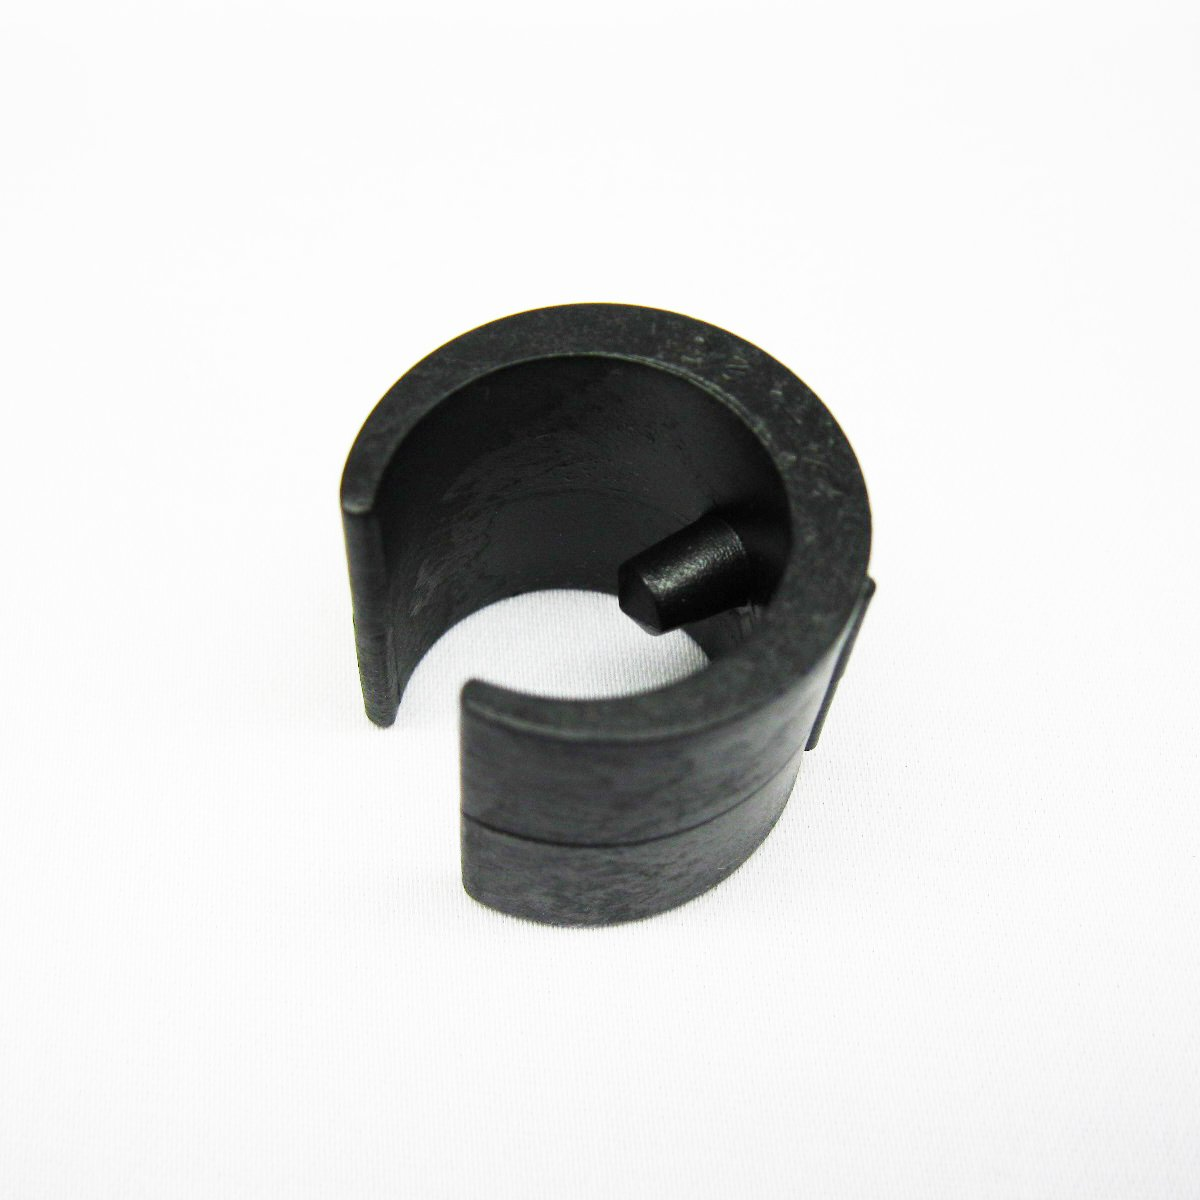 Breuer Chair Glides - Replacement Single Prong U-Shape Plastic Caps in Black (Set of 20) - MADE IN ITALY by Breuer Chair Company (Image #9)